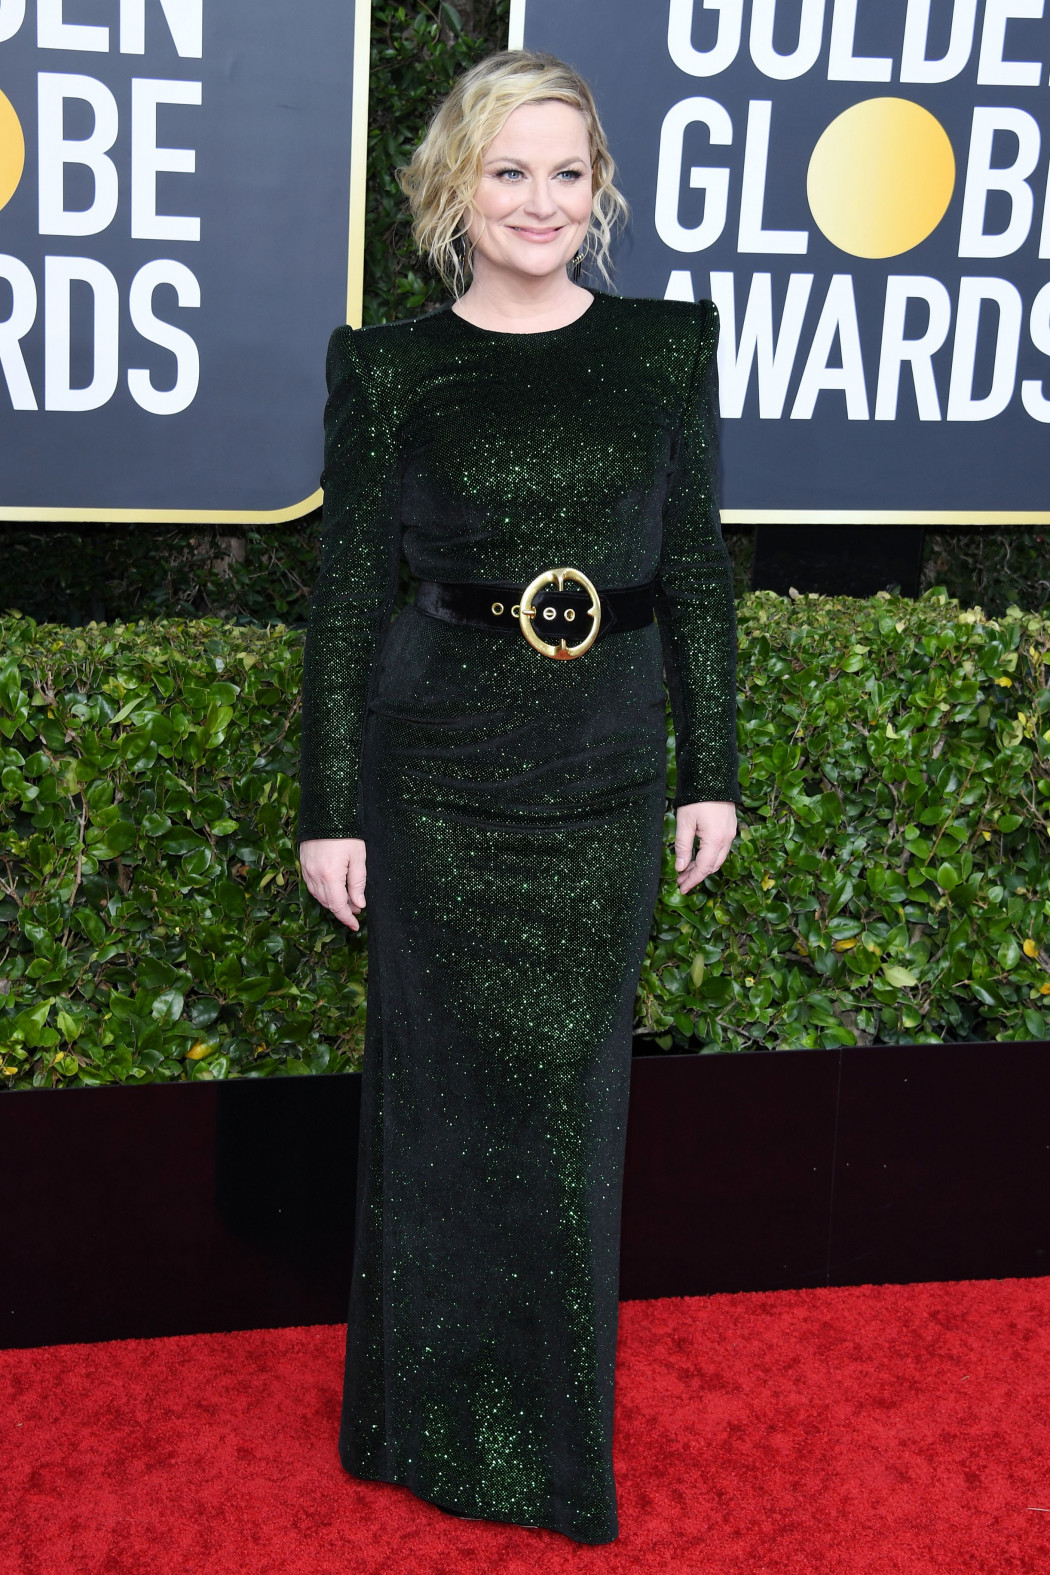 Golden Globes 2020 : les plus beaux looks du tapis rouge - 22